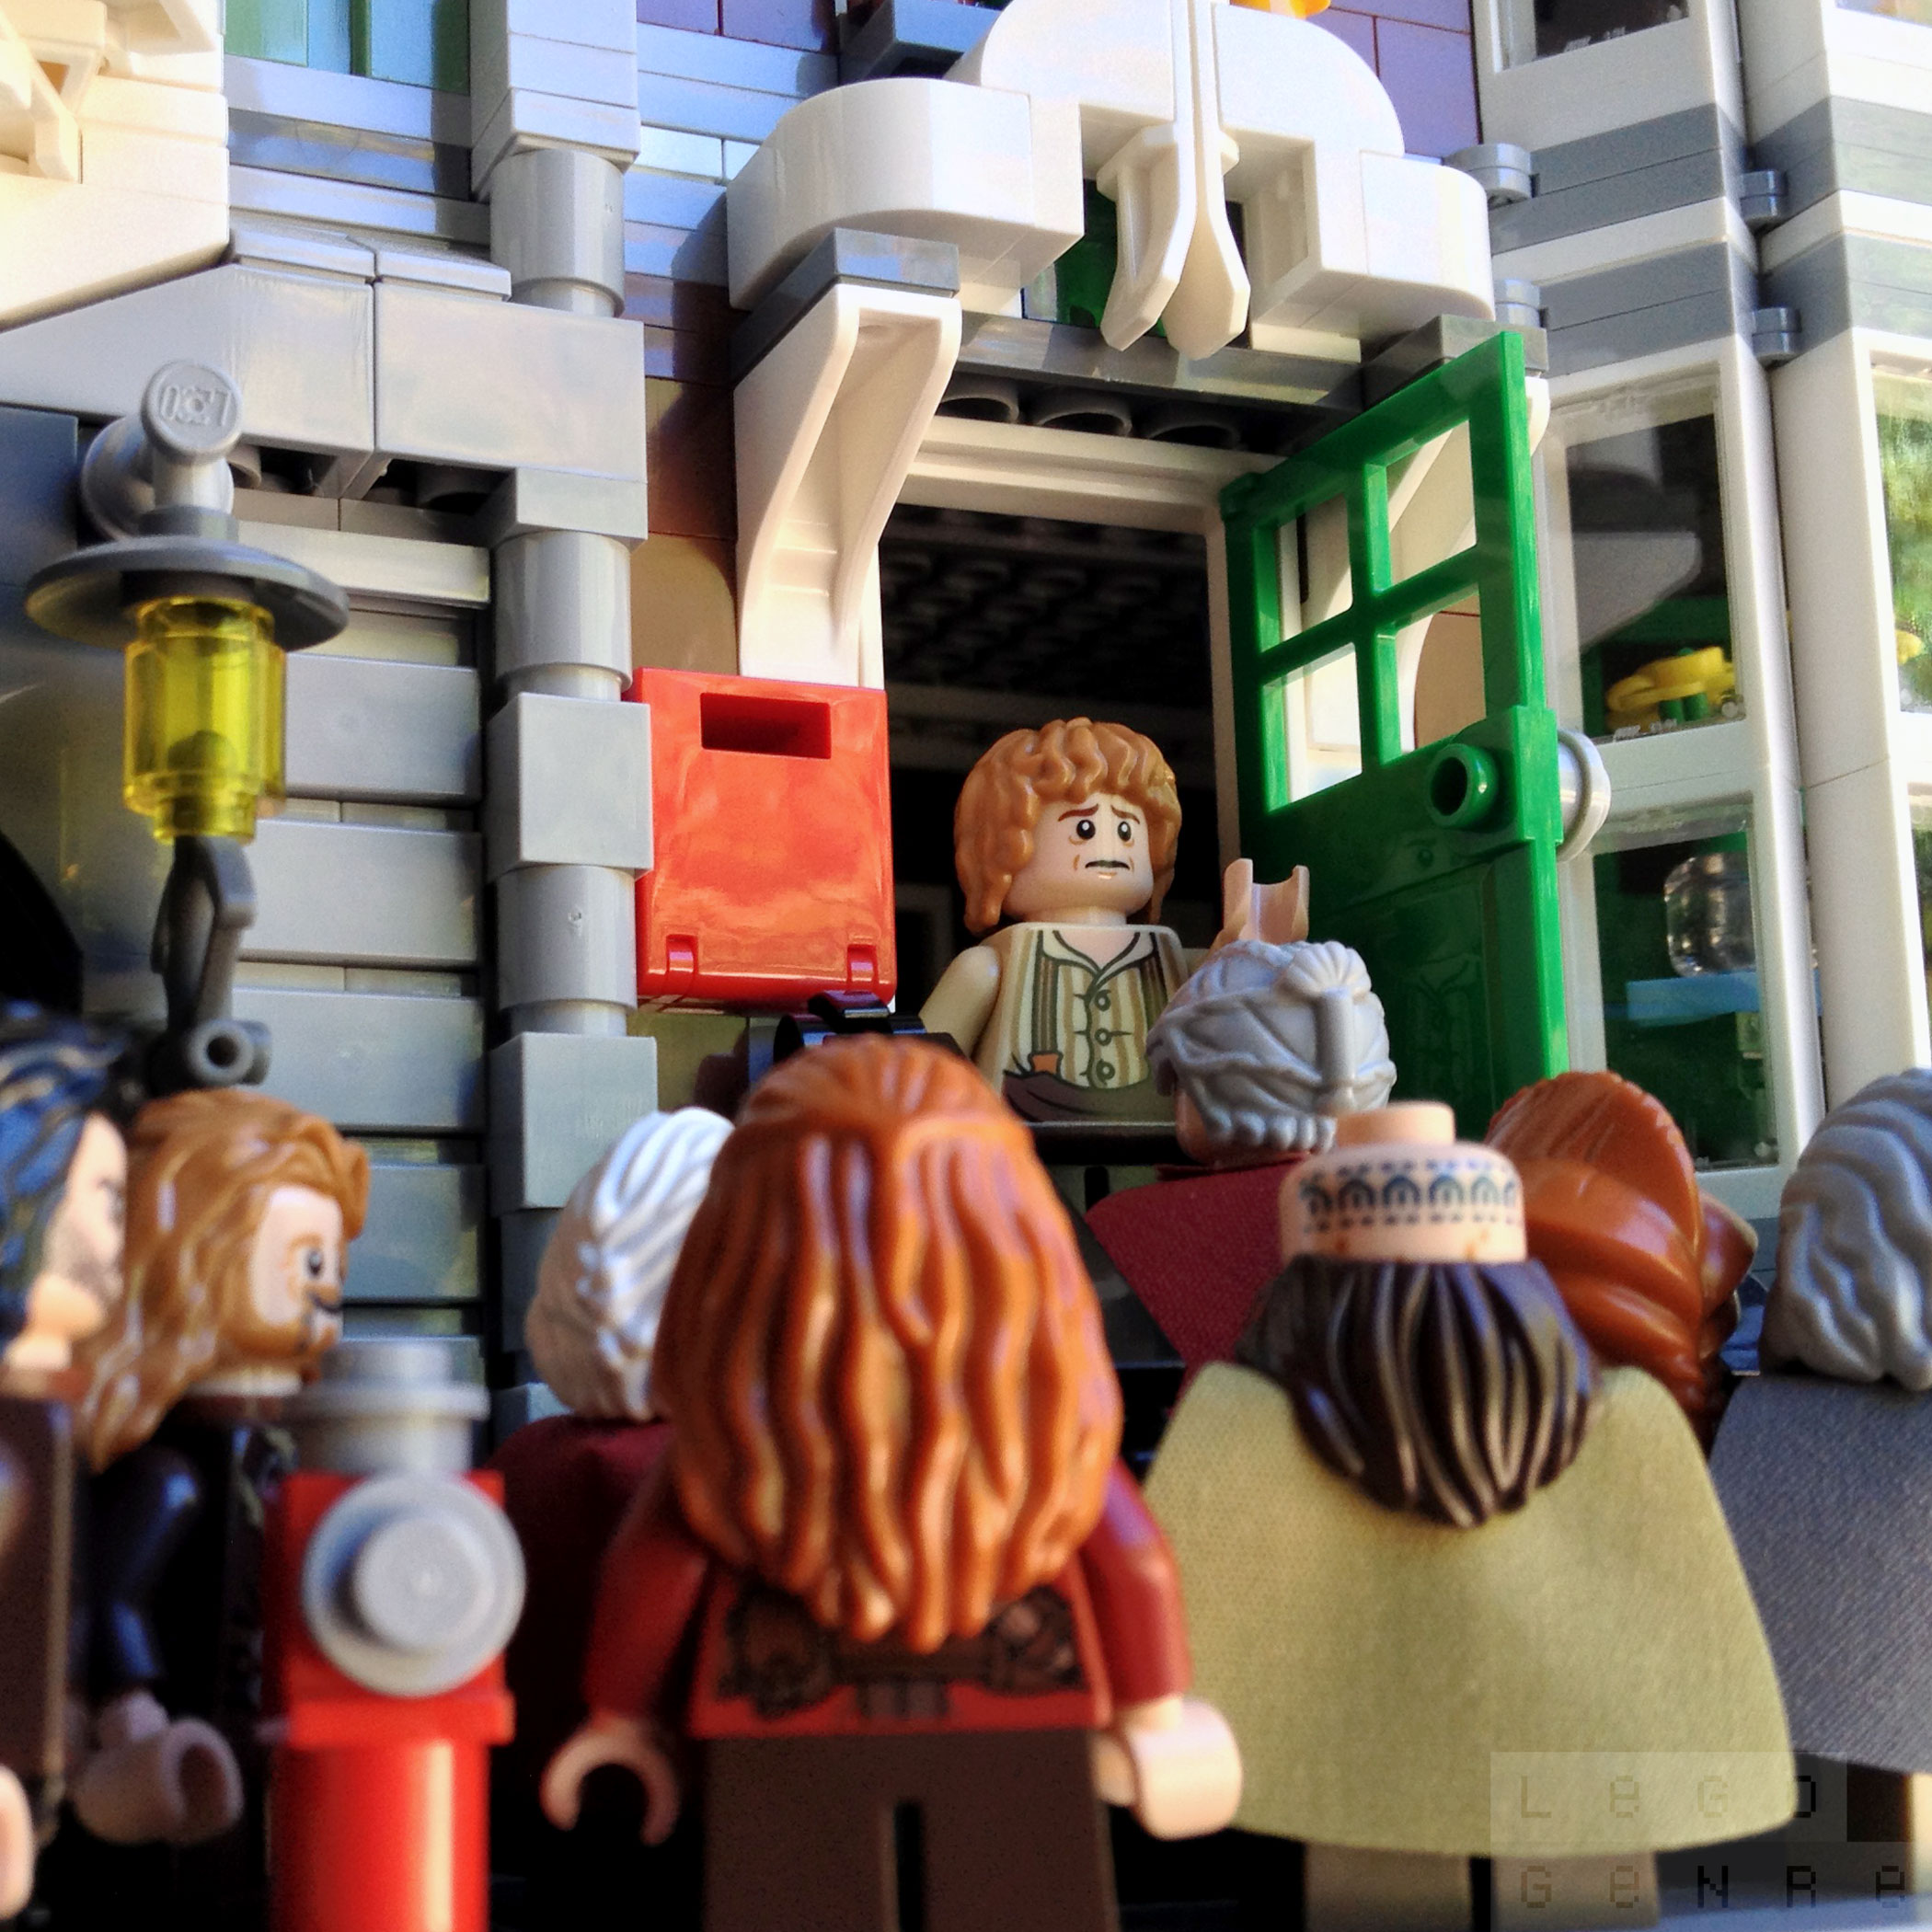 LegoGenre 00275: Another Unexpected Gathering